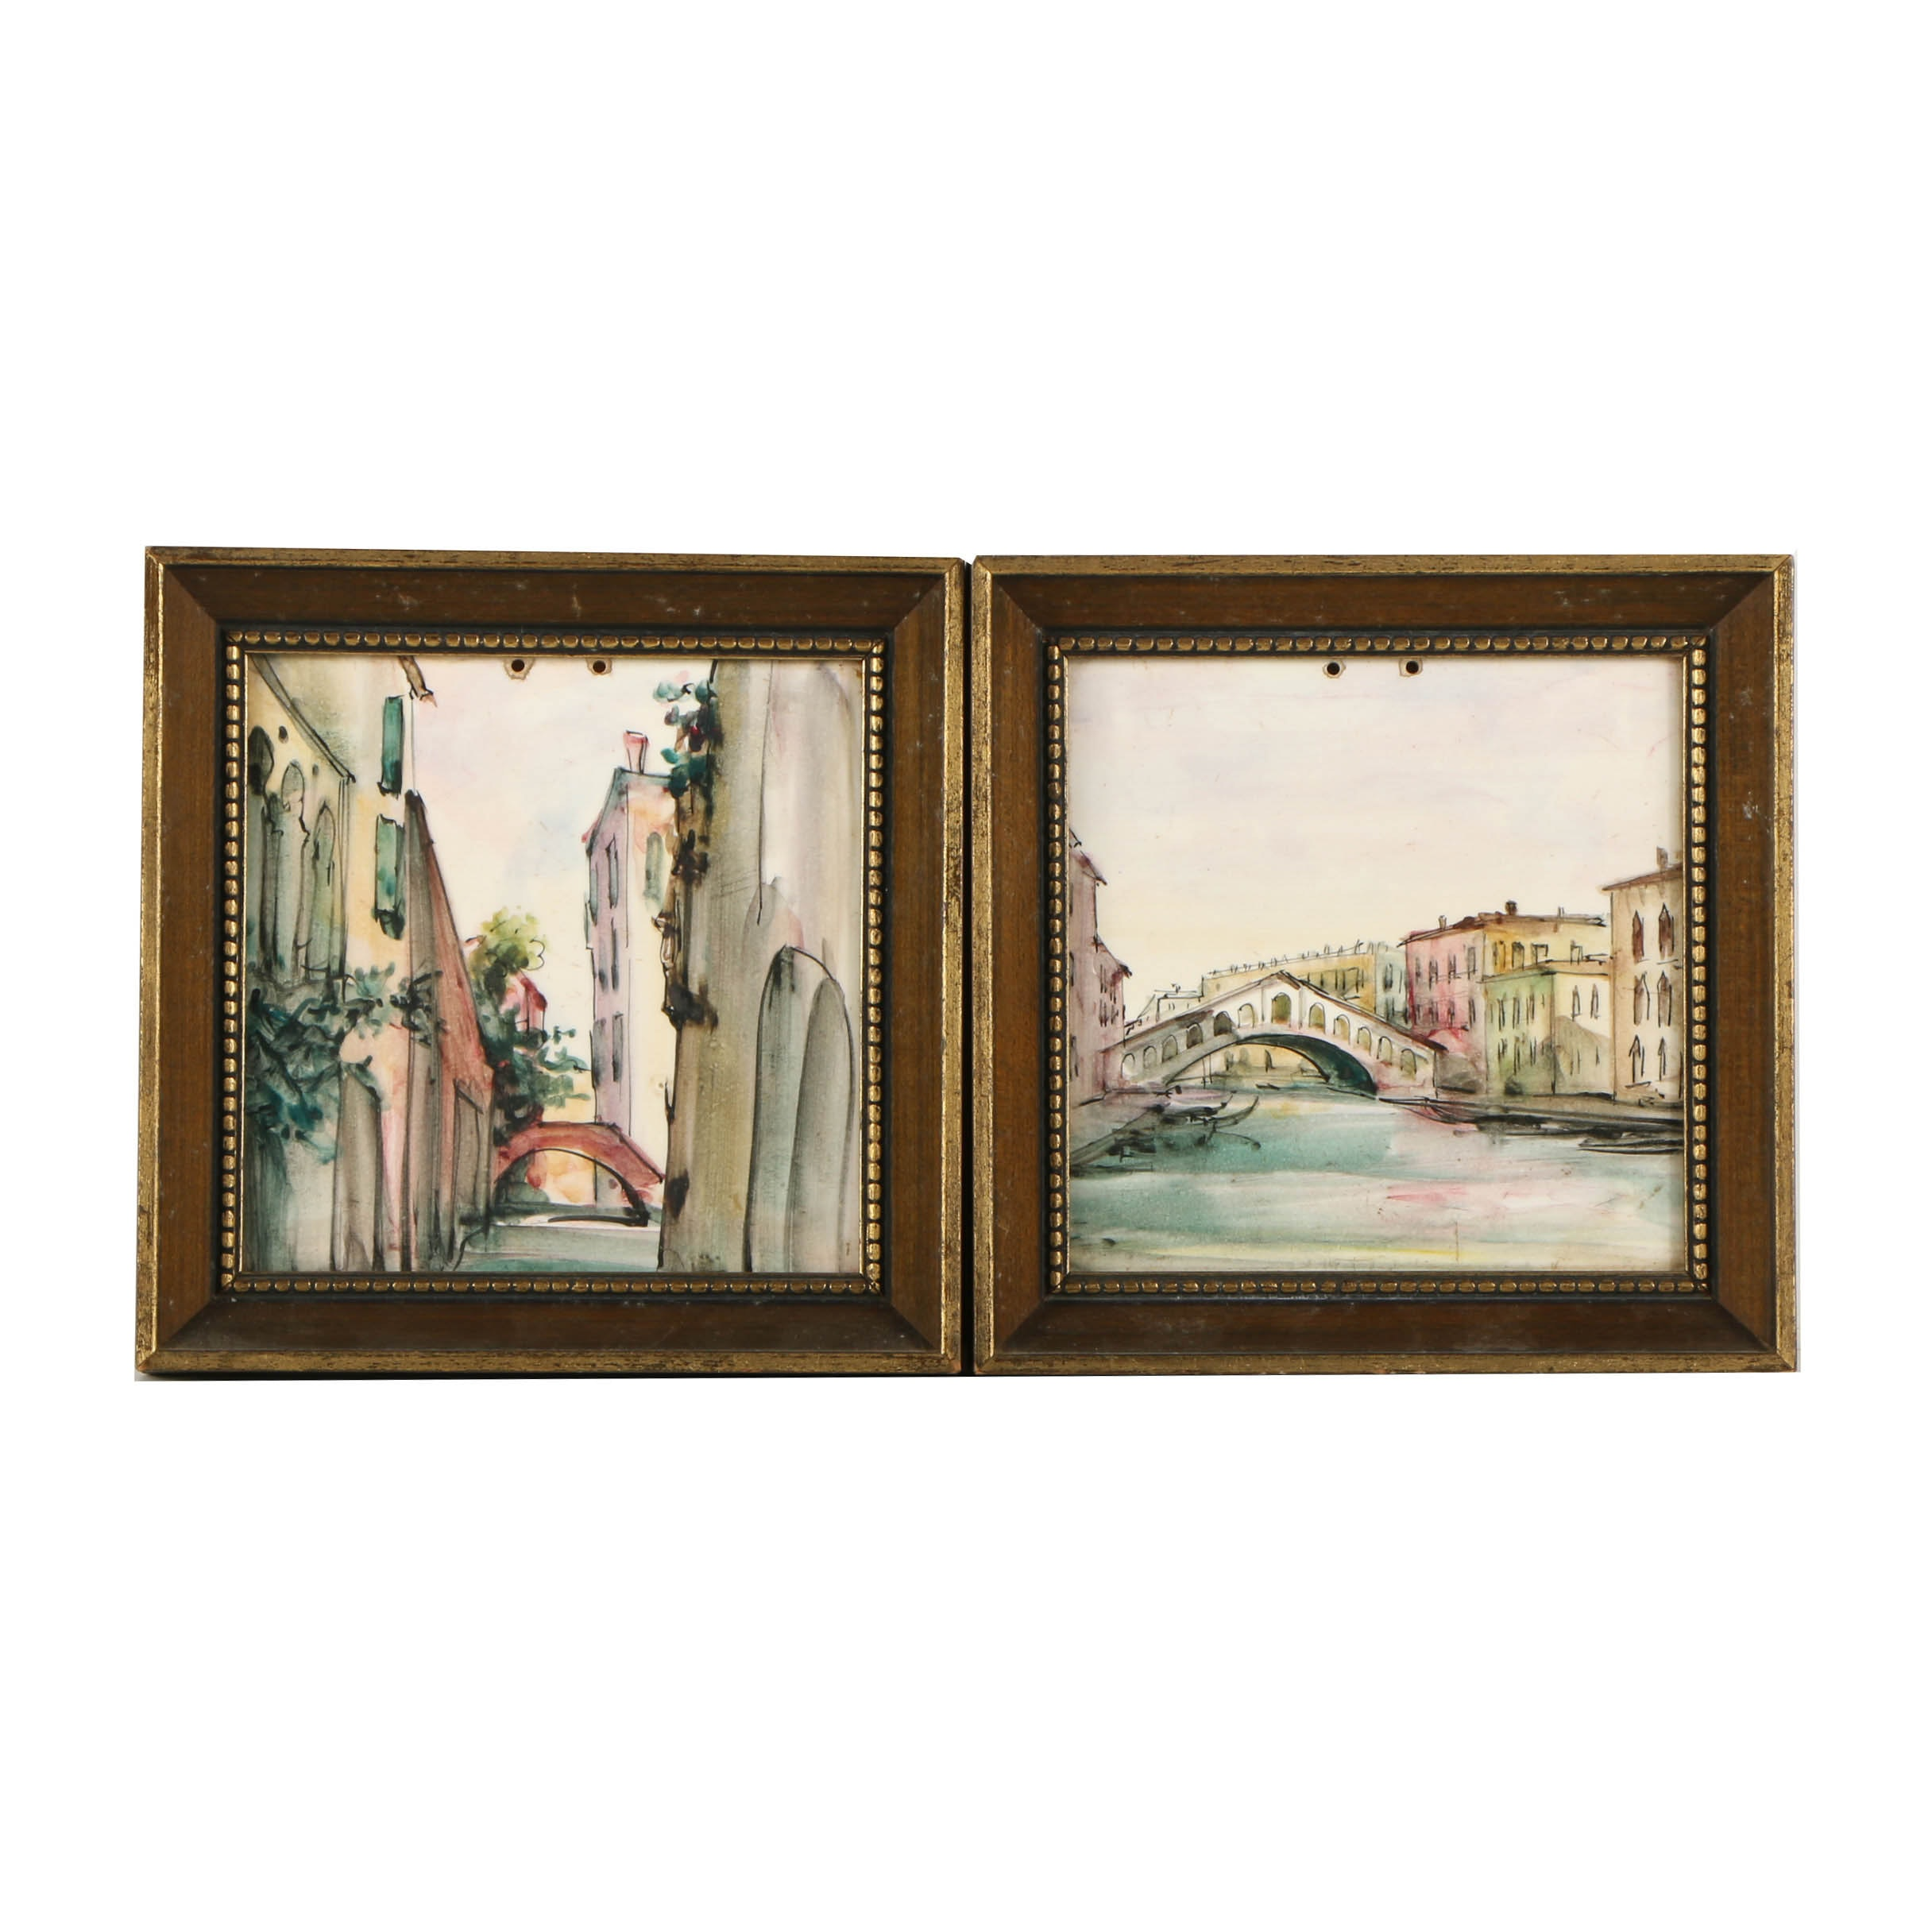 Hand-Painted Ceramic Tiles of Canal Scenes